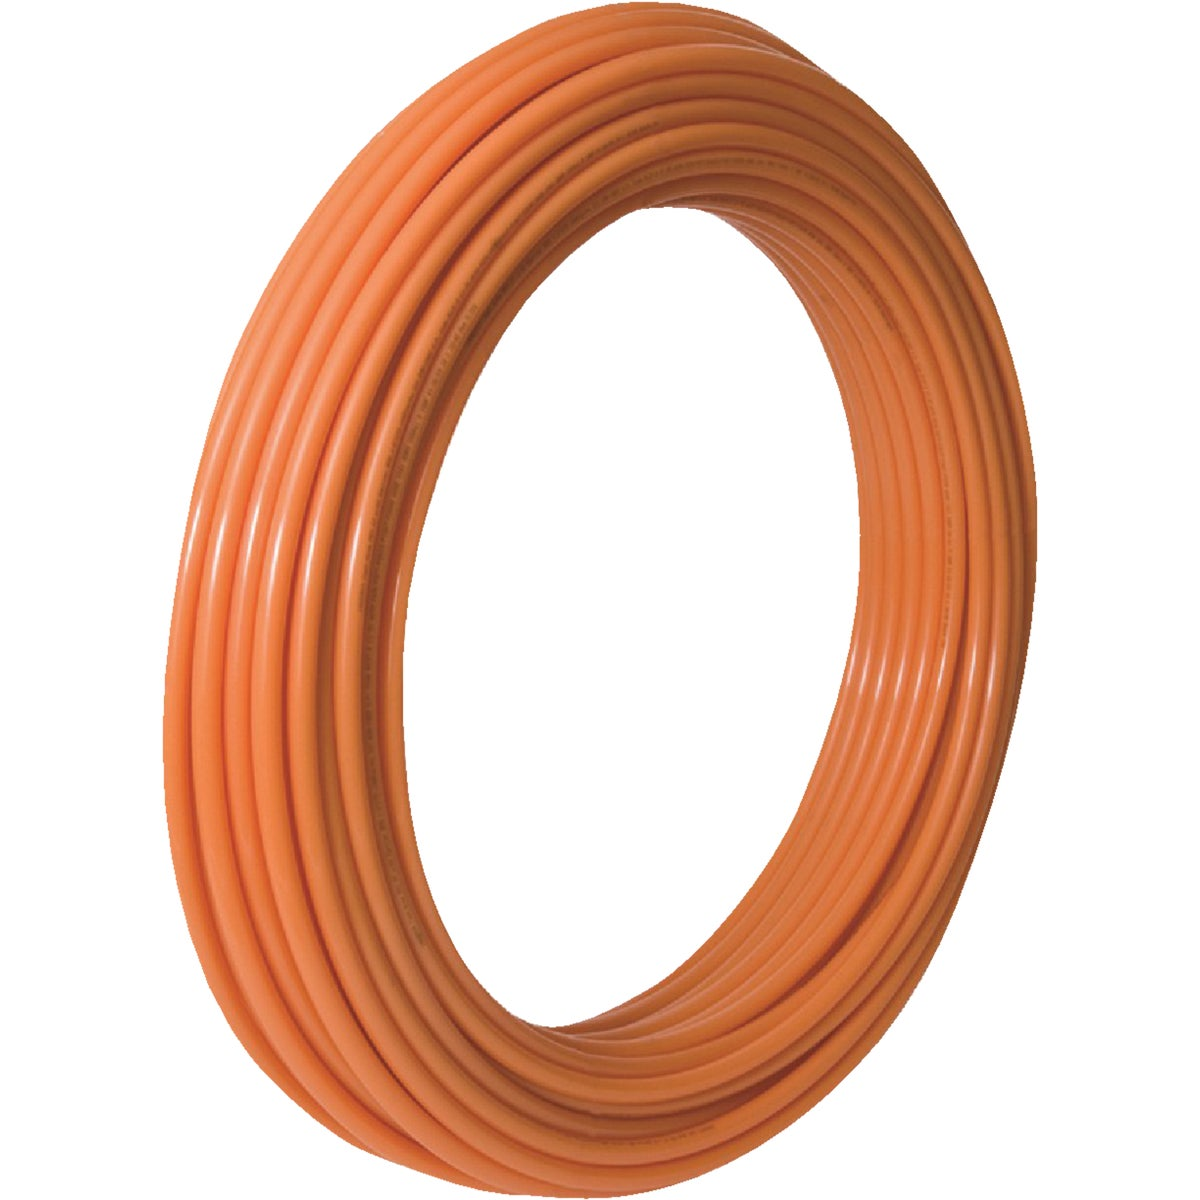 "1""X100' RADIANT TUBING - PH-1-100 by Watts Regulator Co"